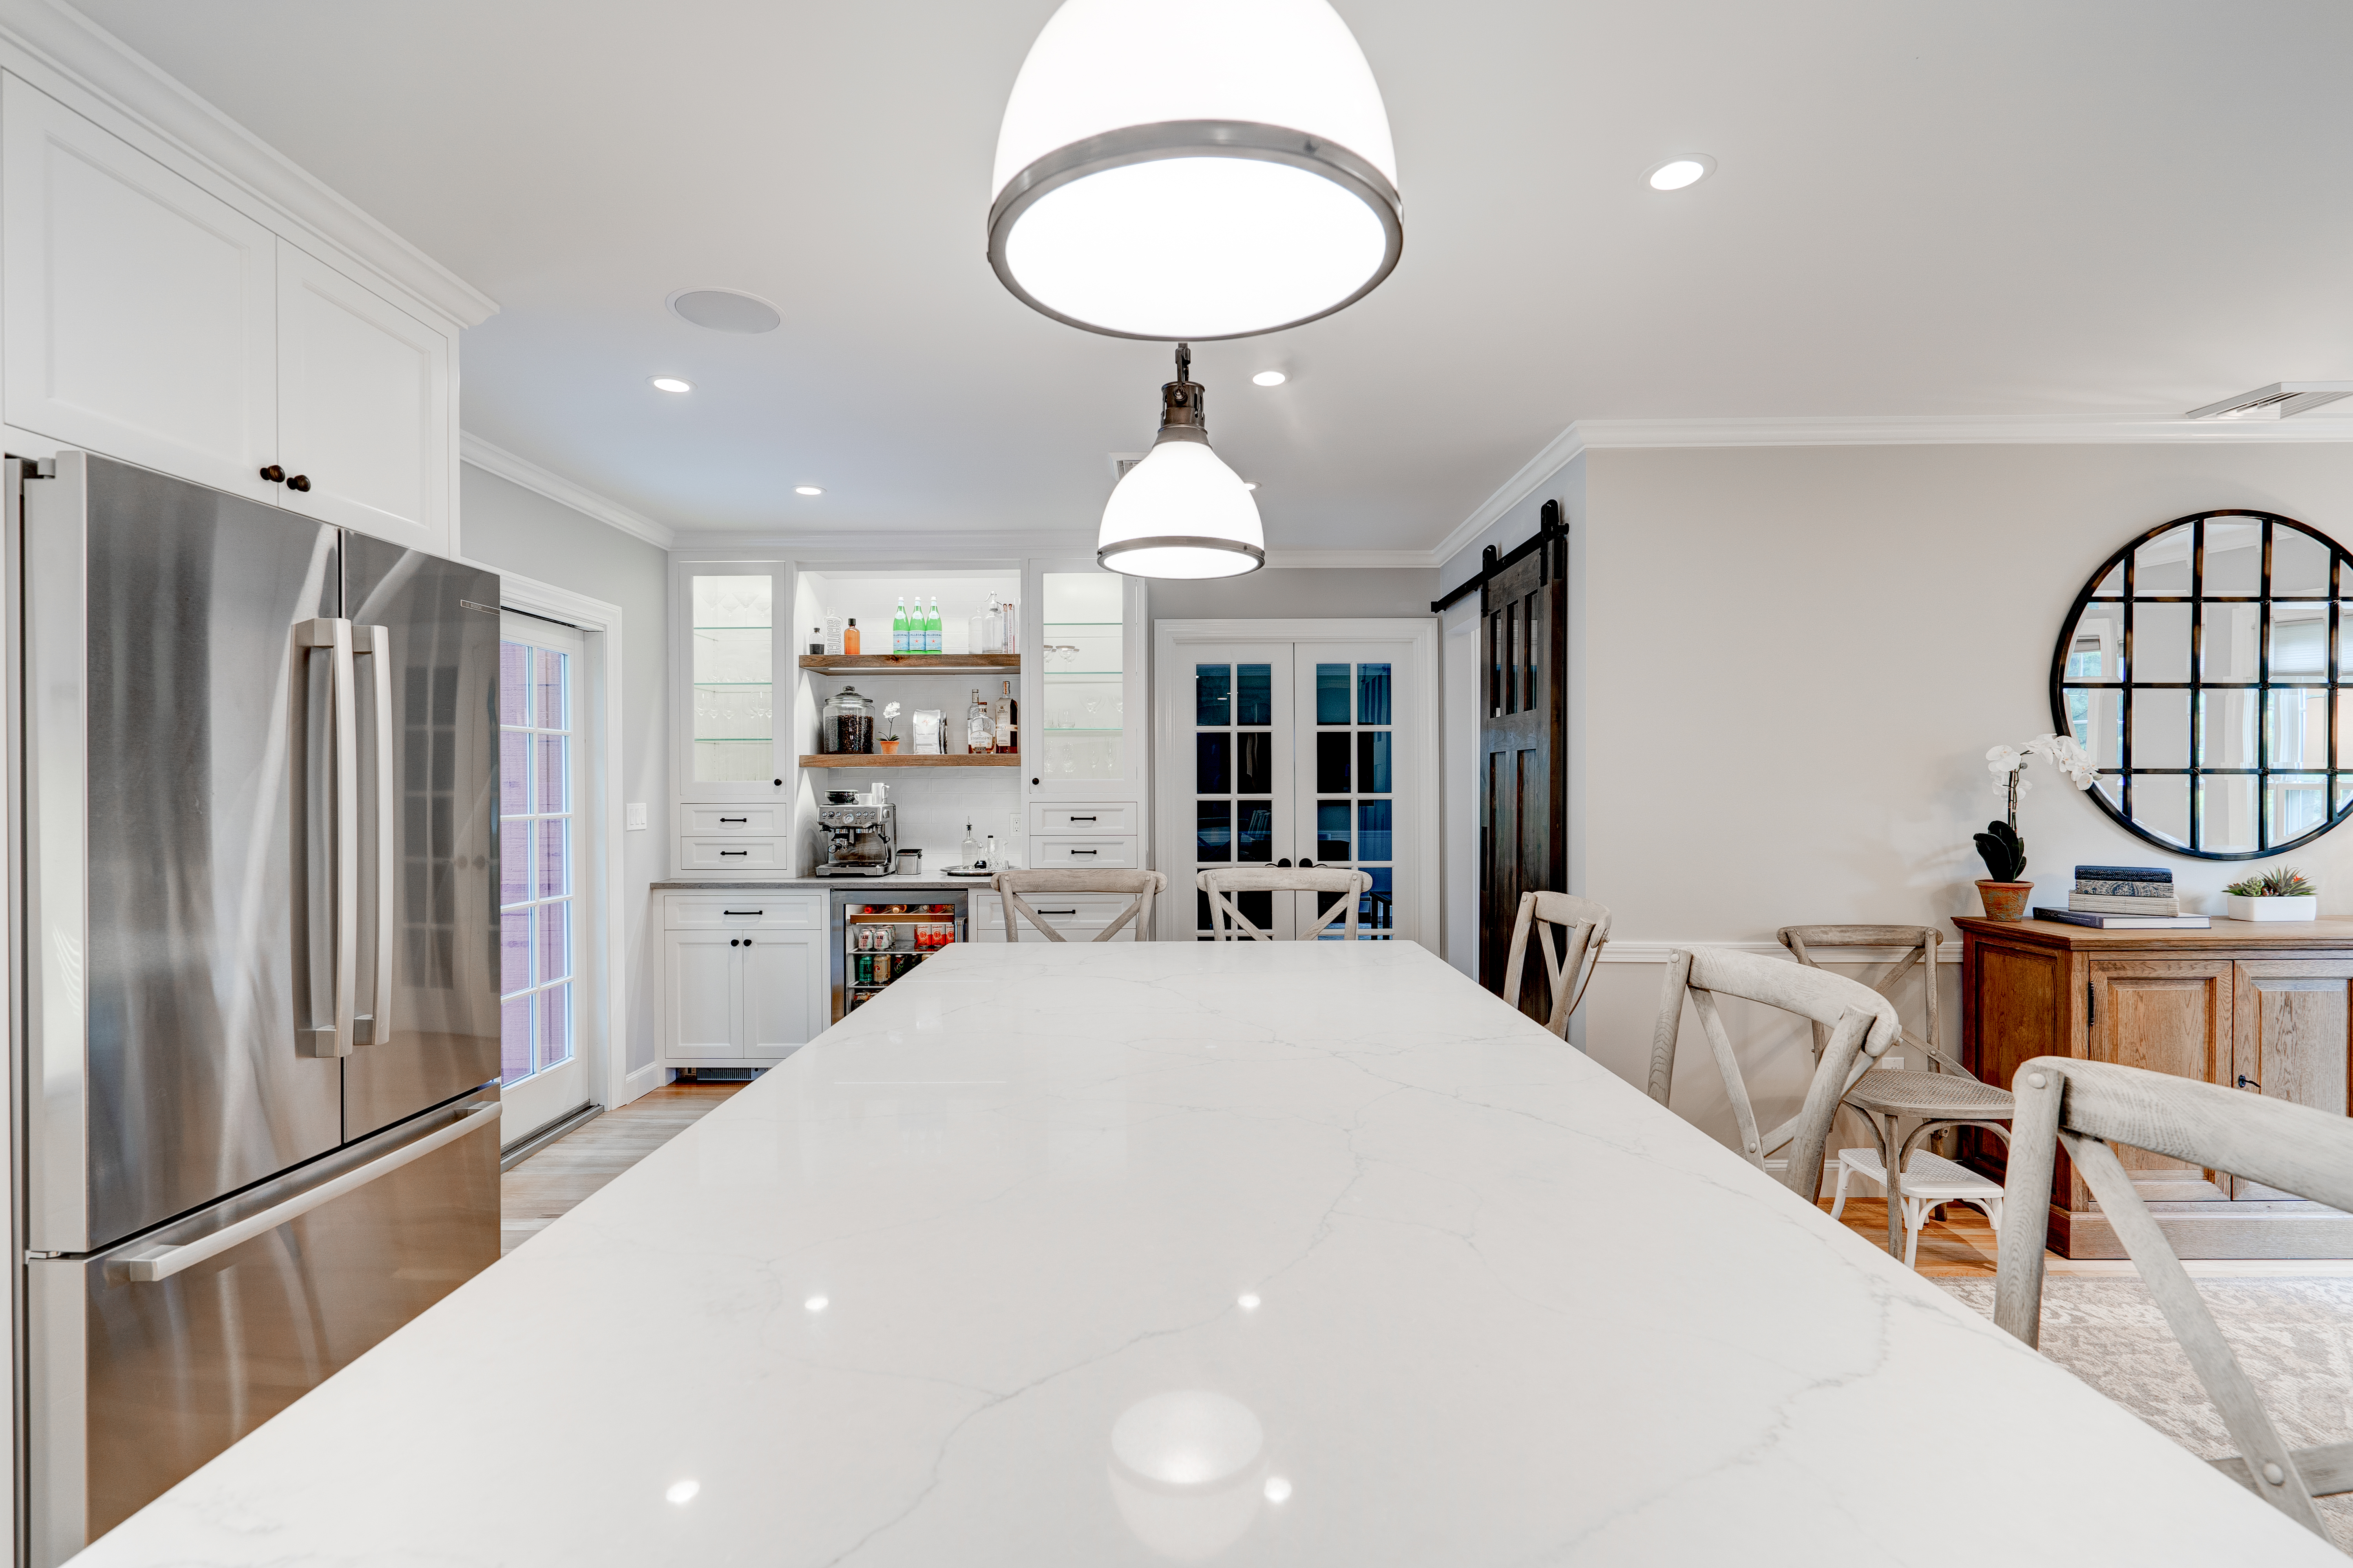 Spacious custom kitchen real estate photography